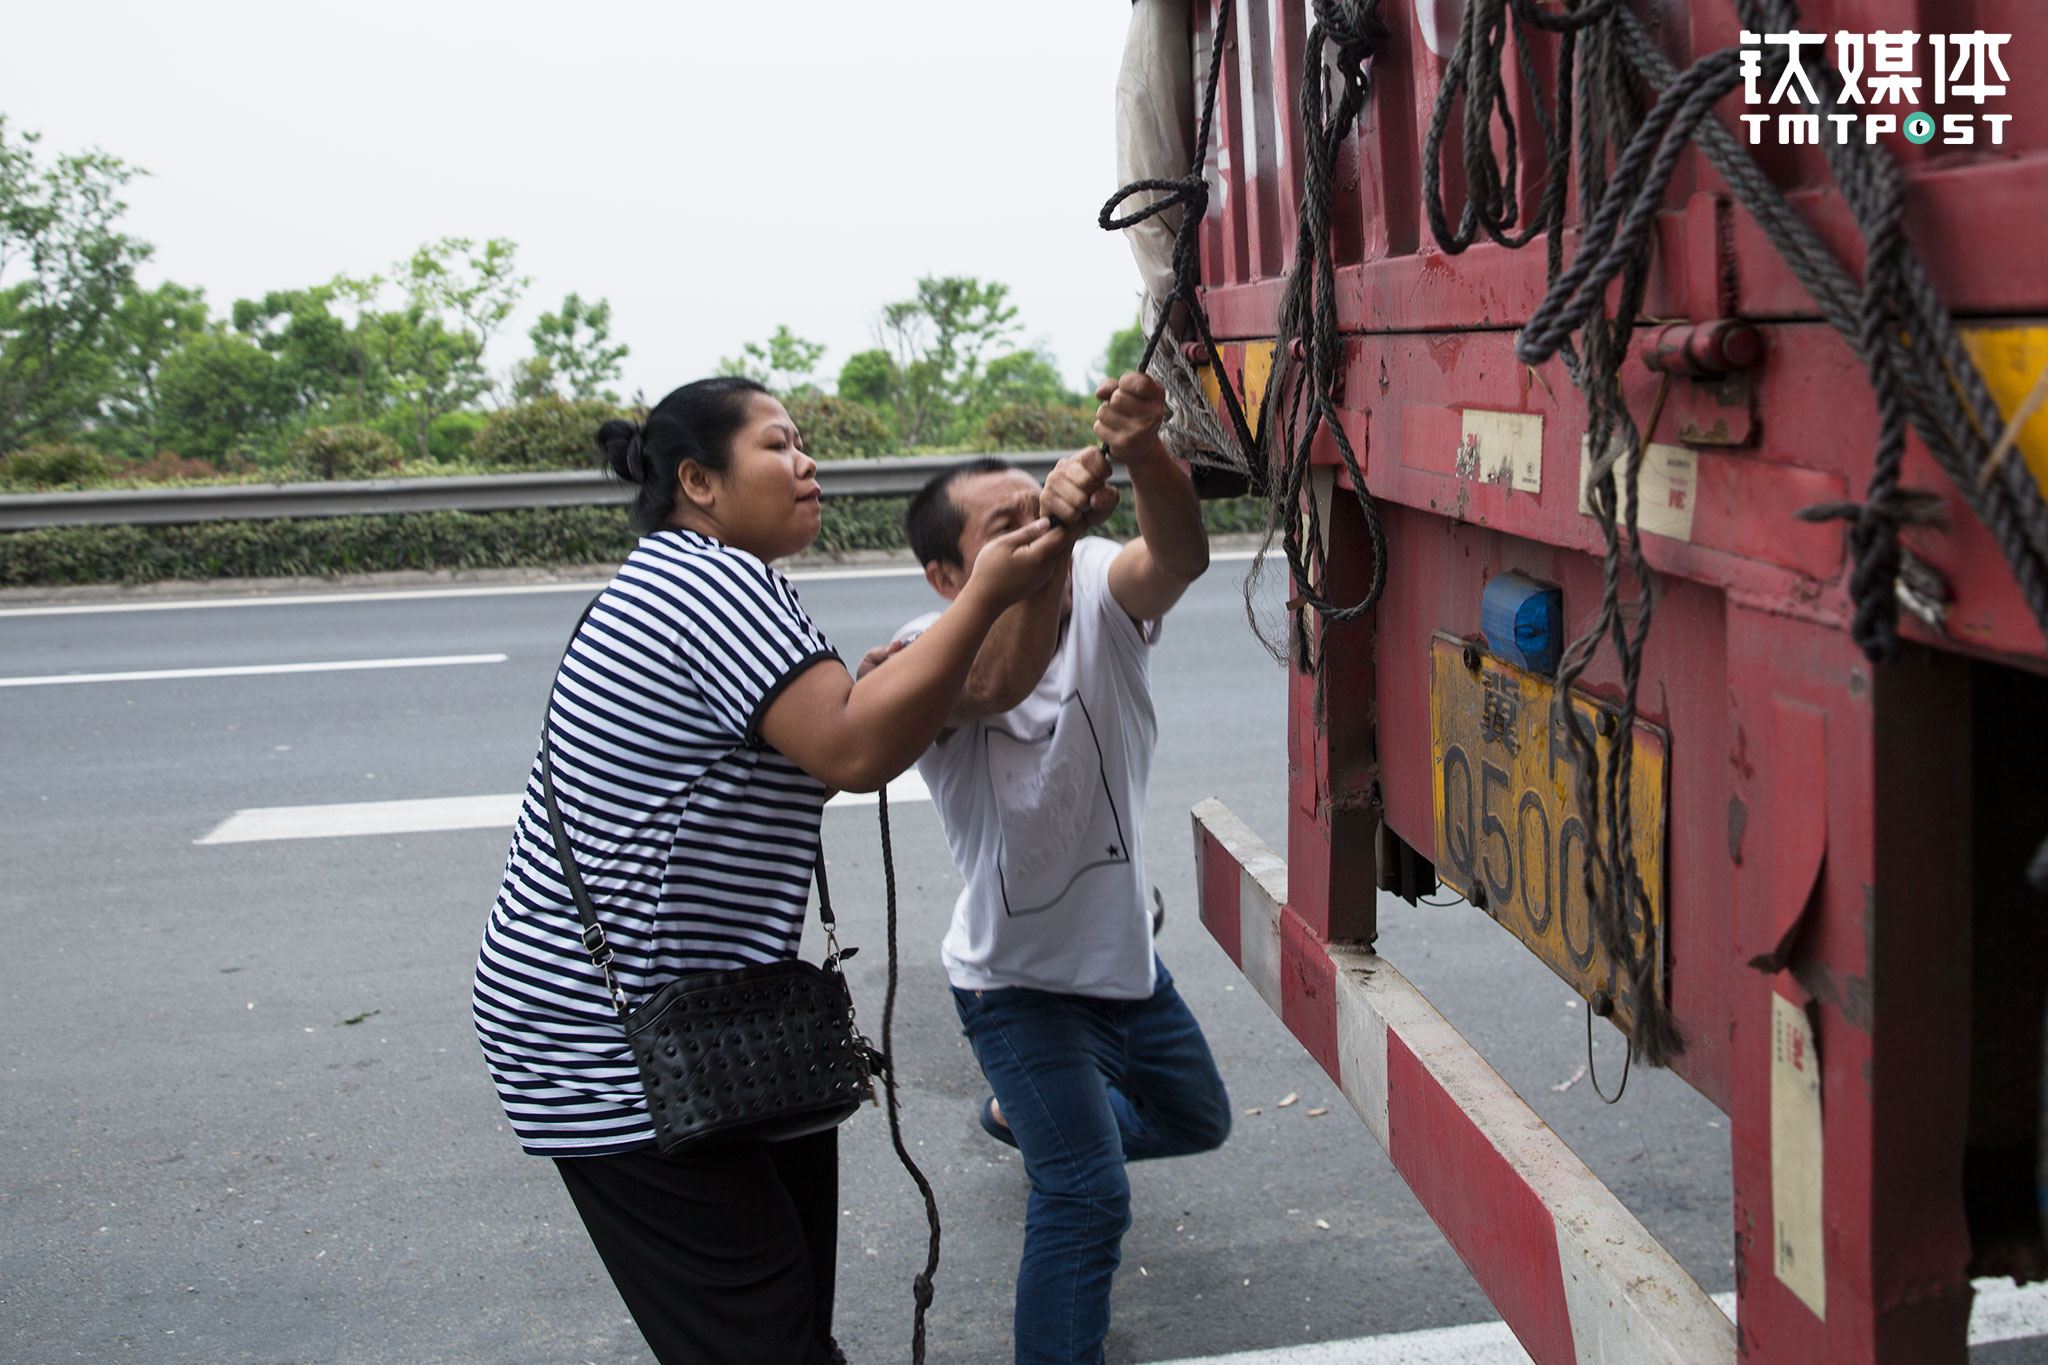 After one day of bumpy journey, the truck load became a bit loosen from the straps. Jin Qiang stopped the truck and tightened the securing ropes at the roadside.